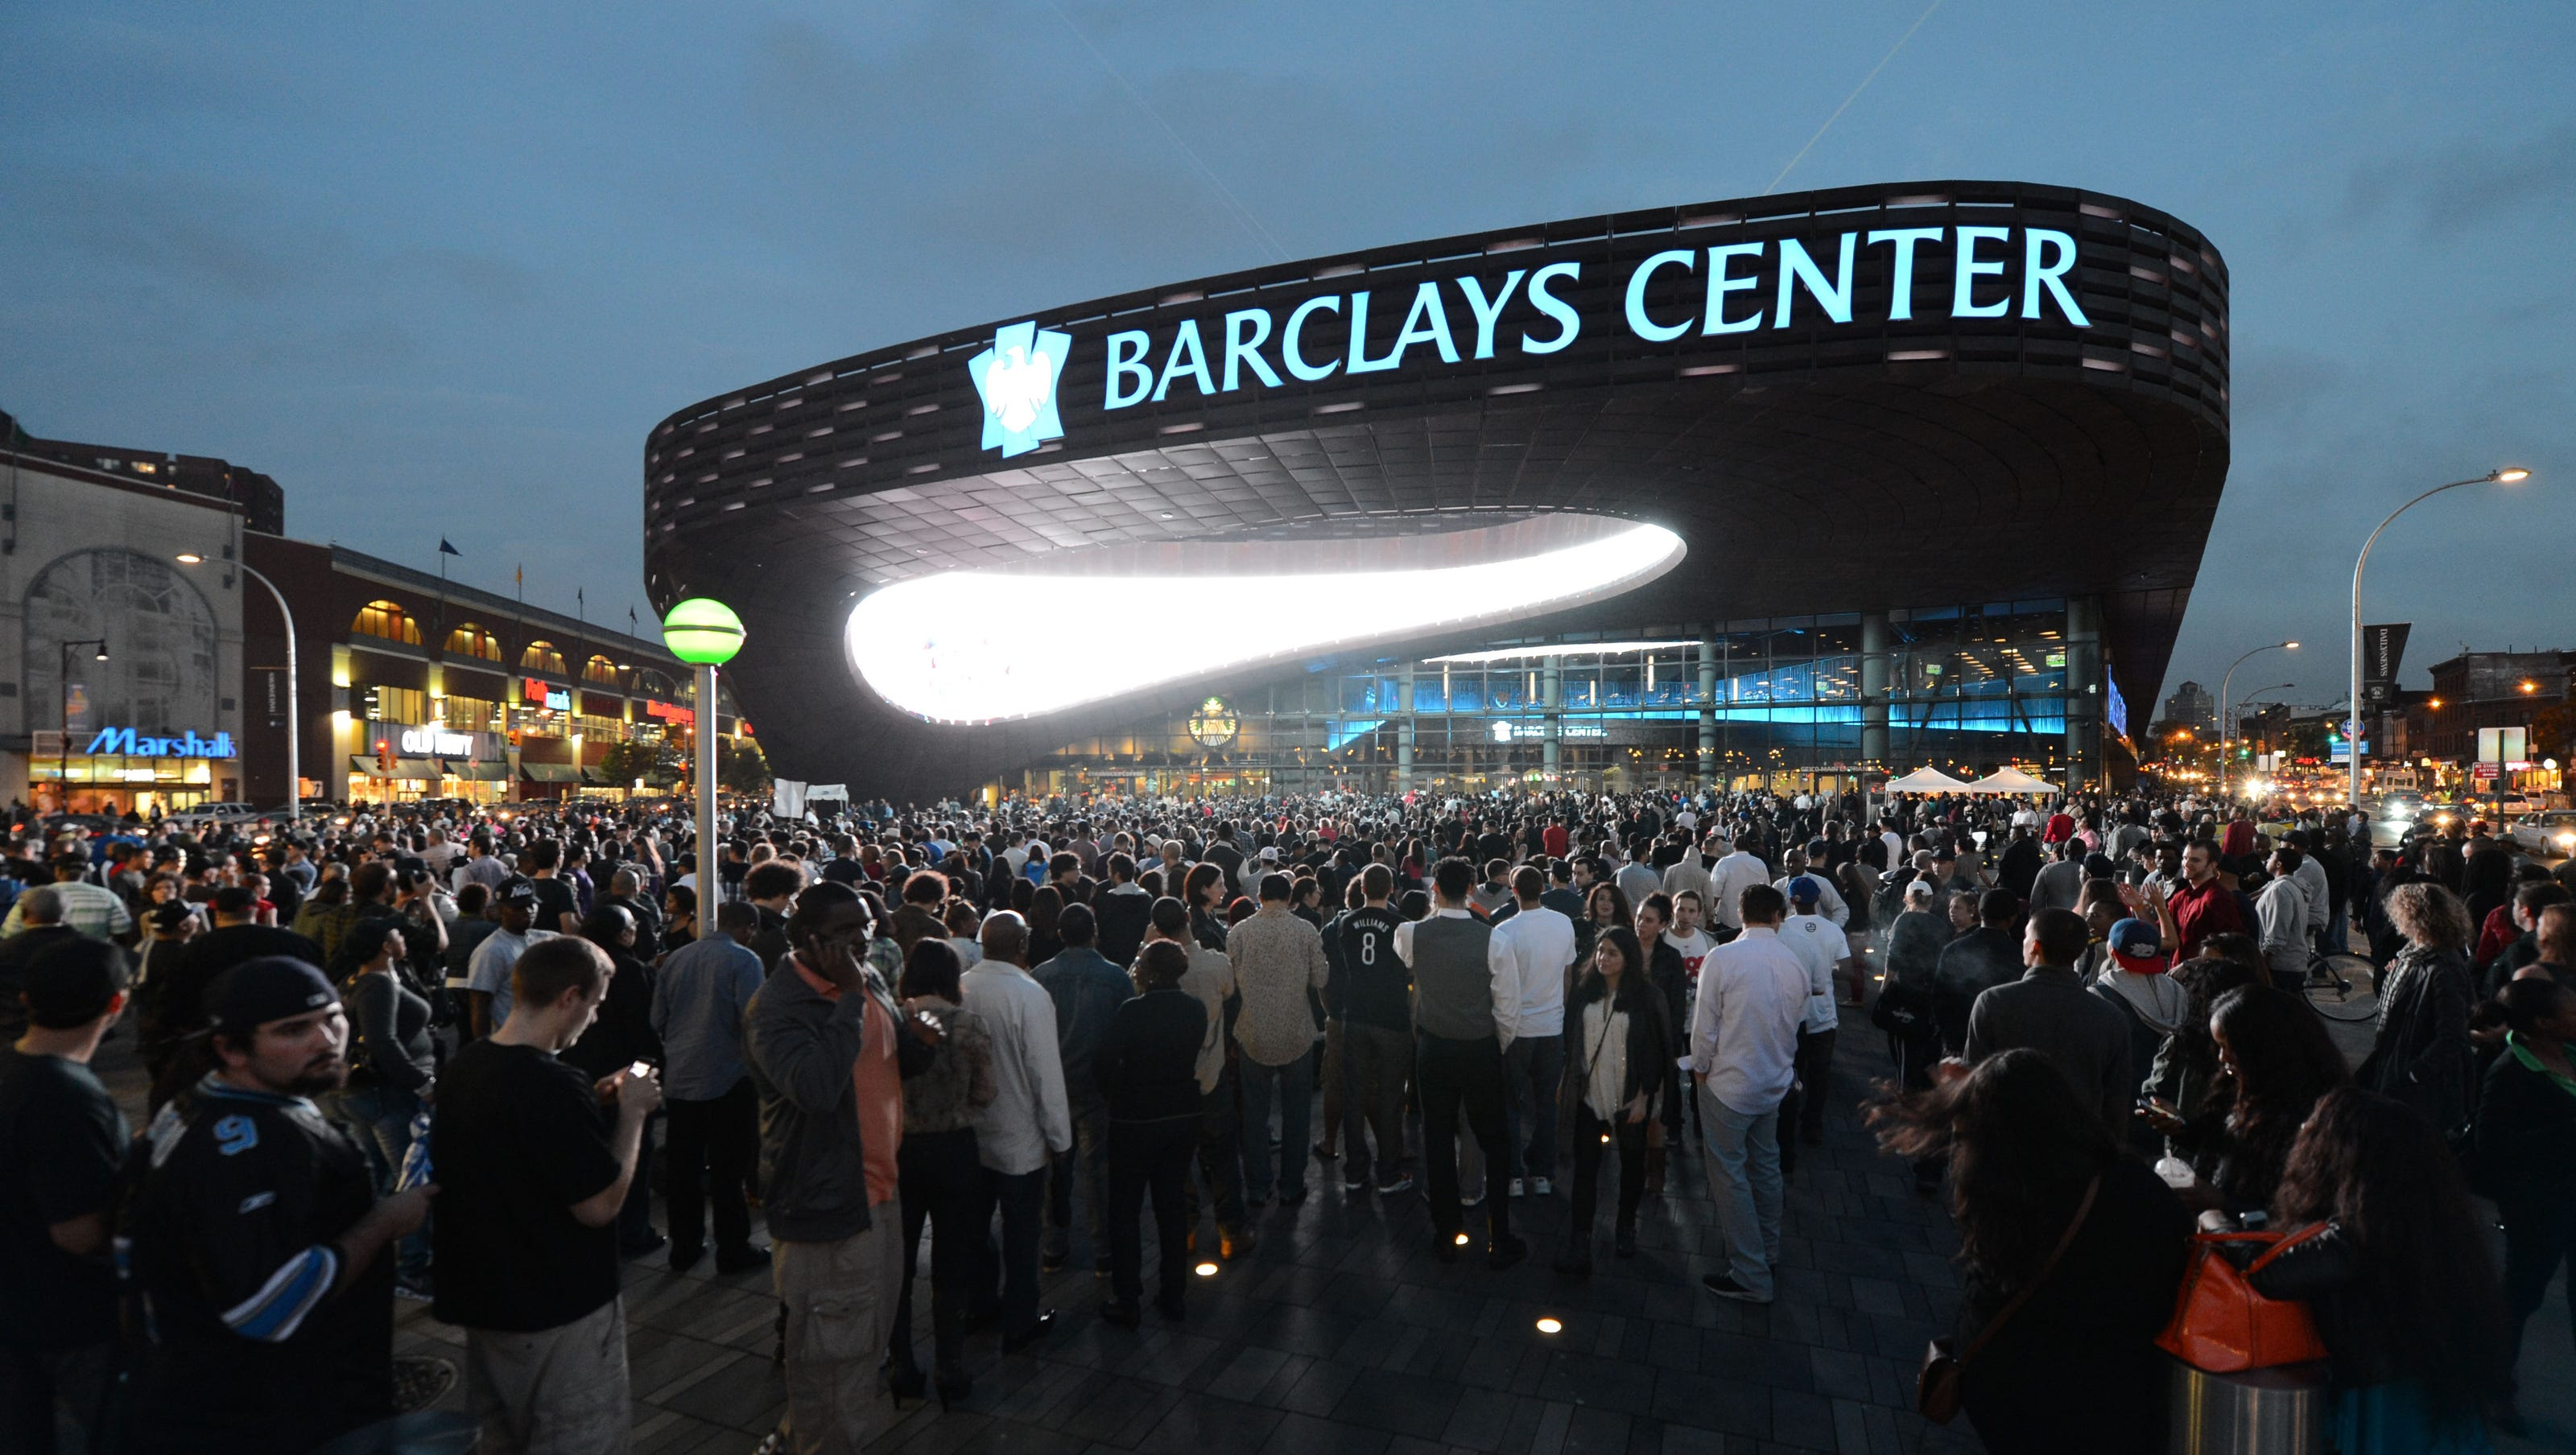 new york islanders will move to barclays center